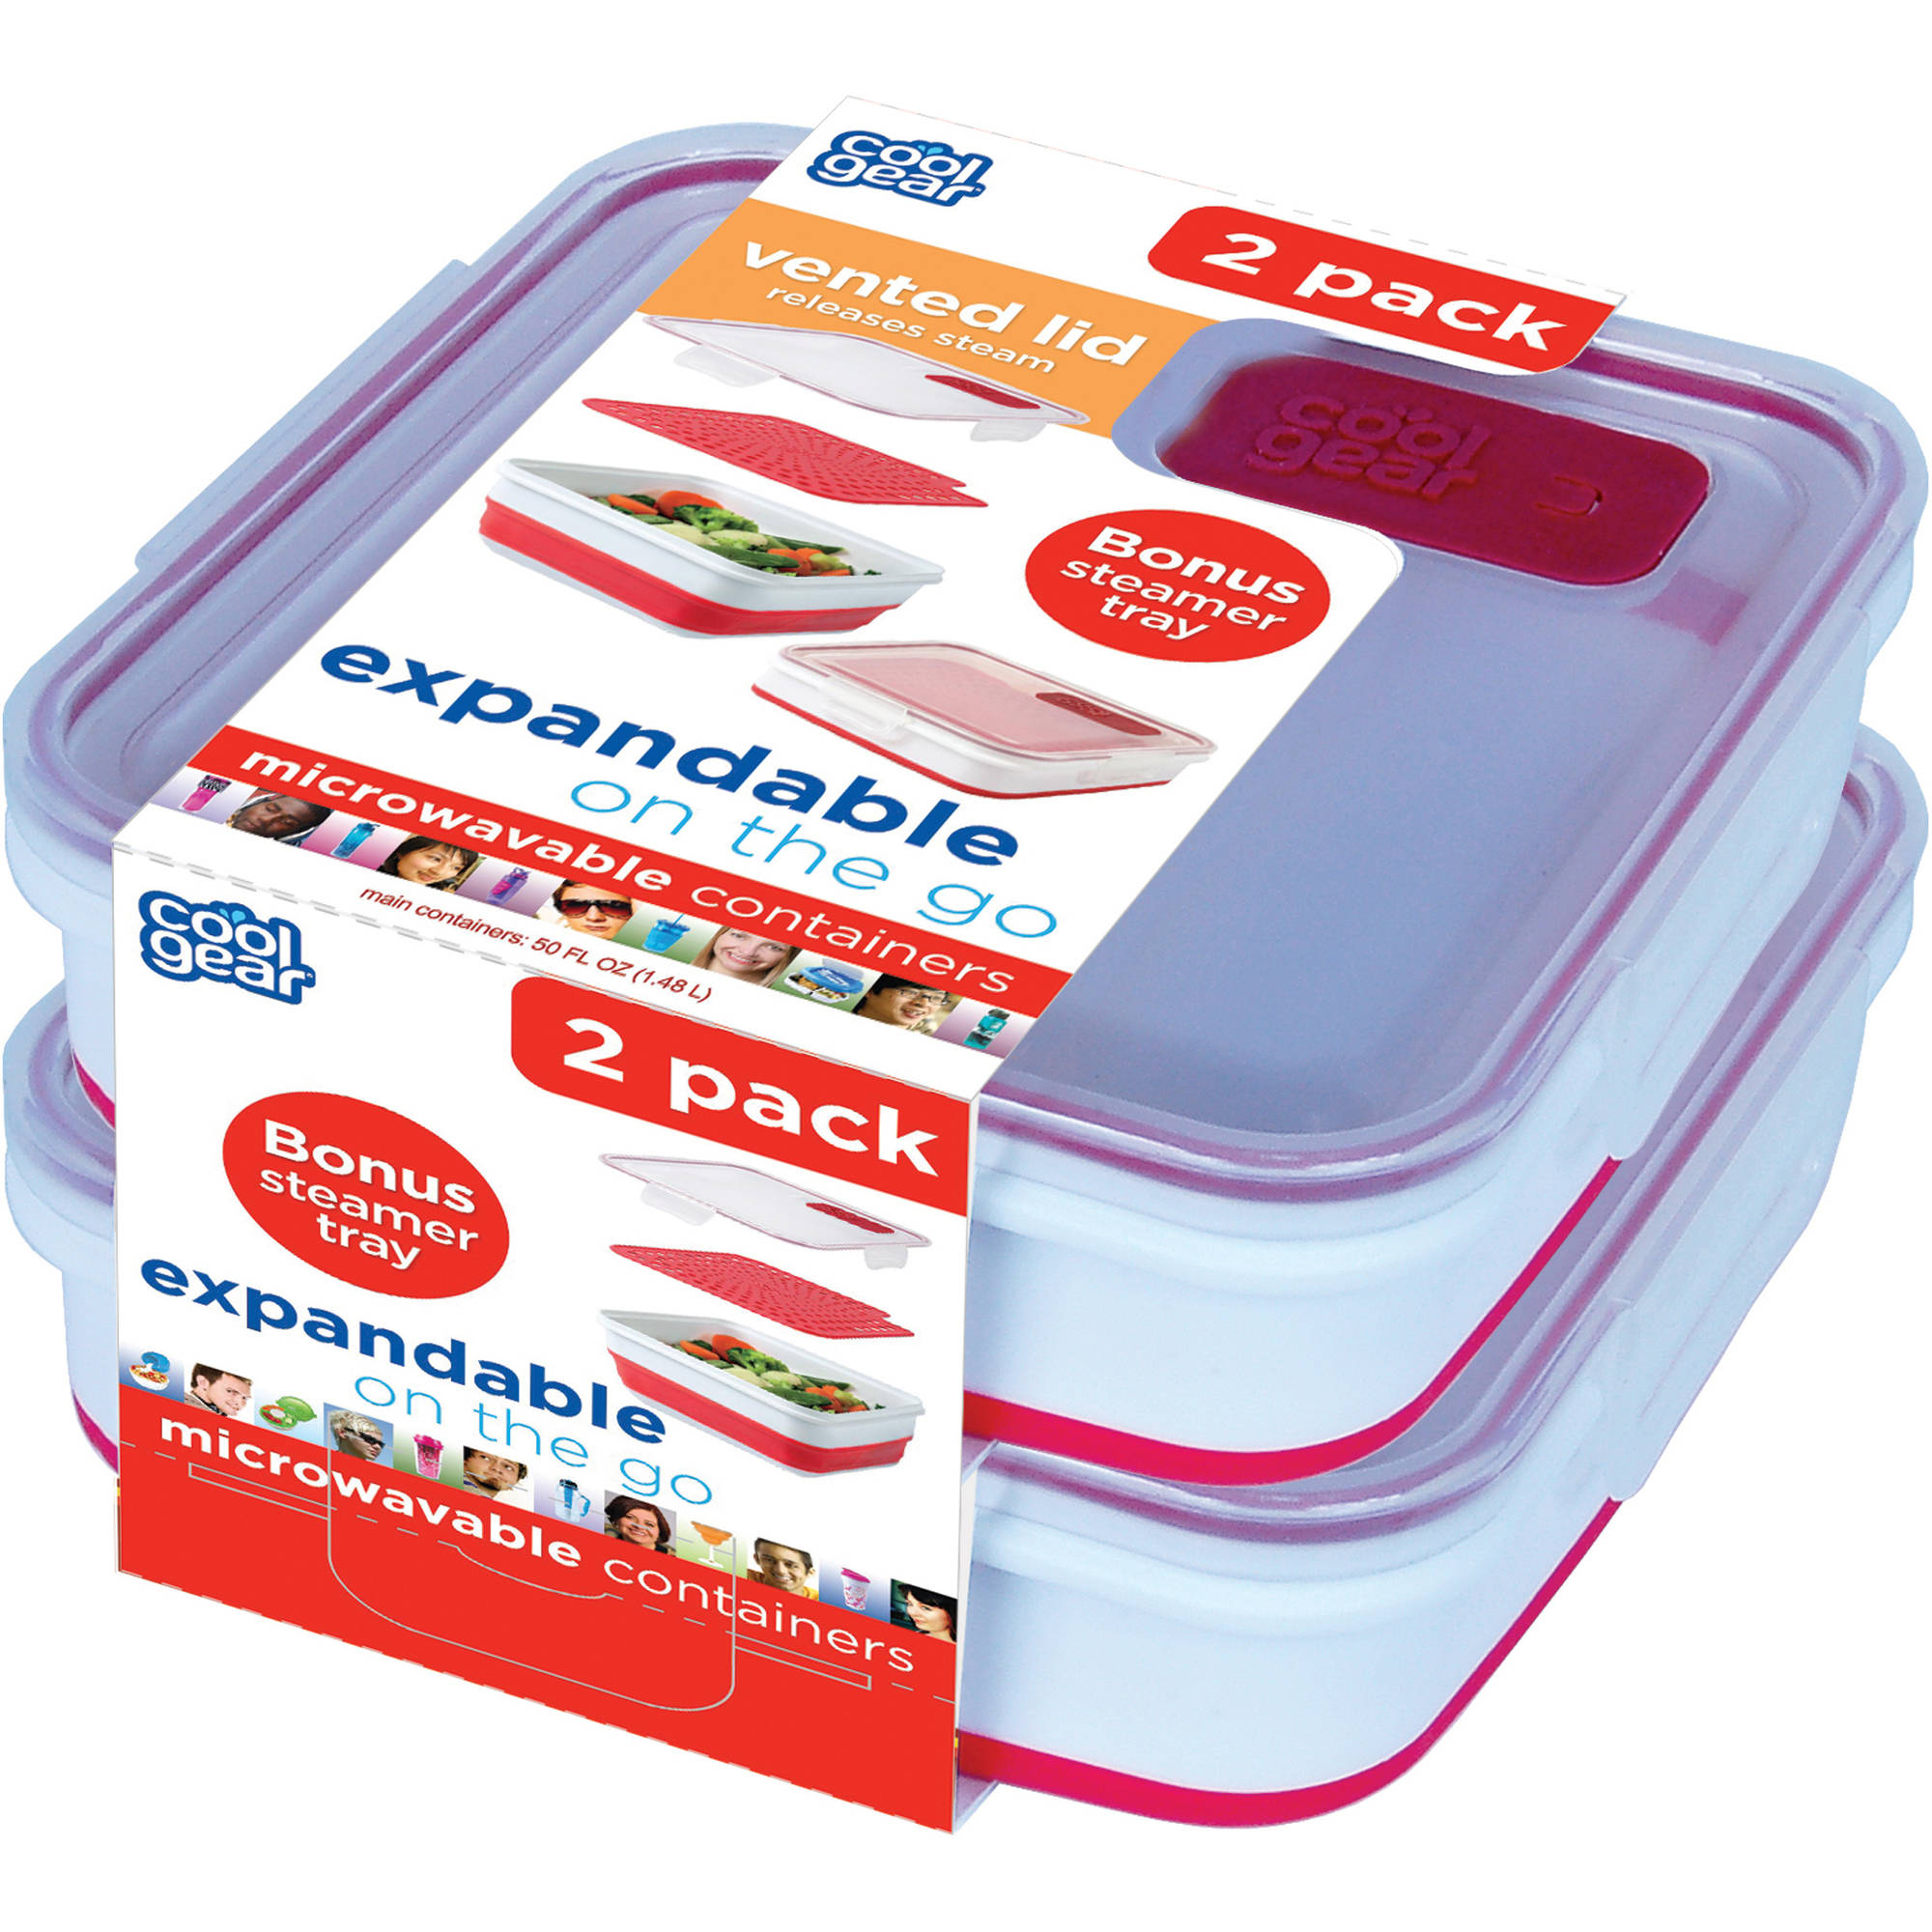 Cool Gear Expandable On The Go with Bonus Steamer Tray, 2-Pack